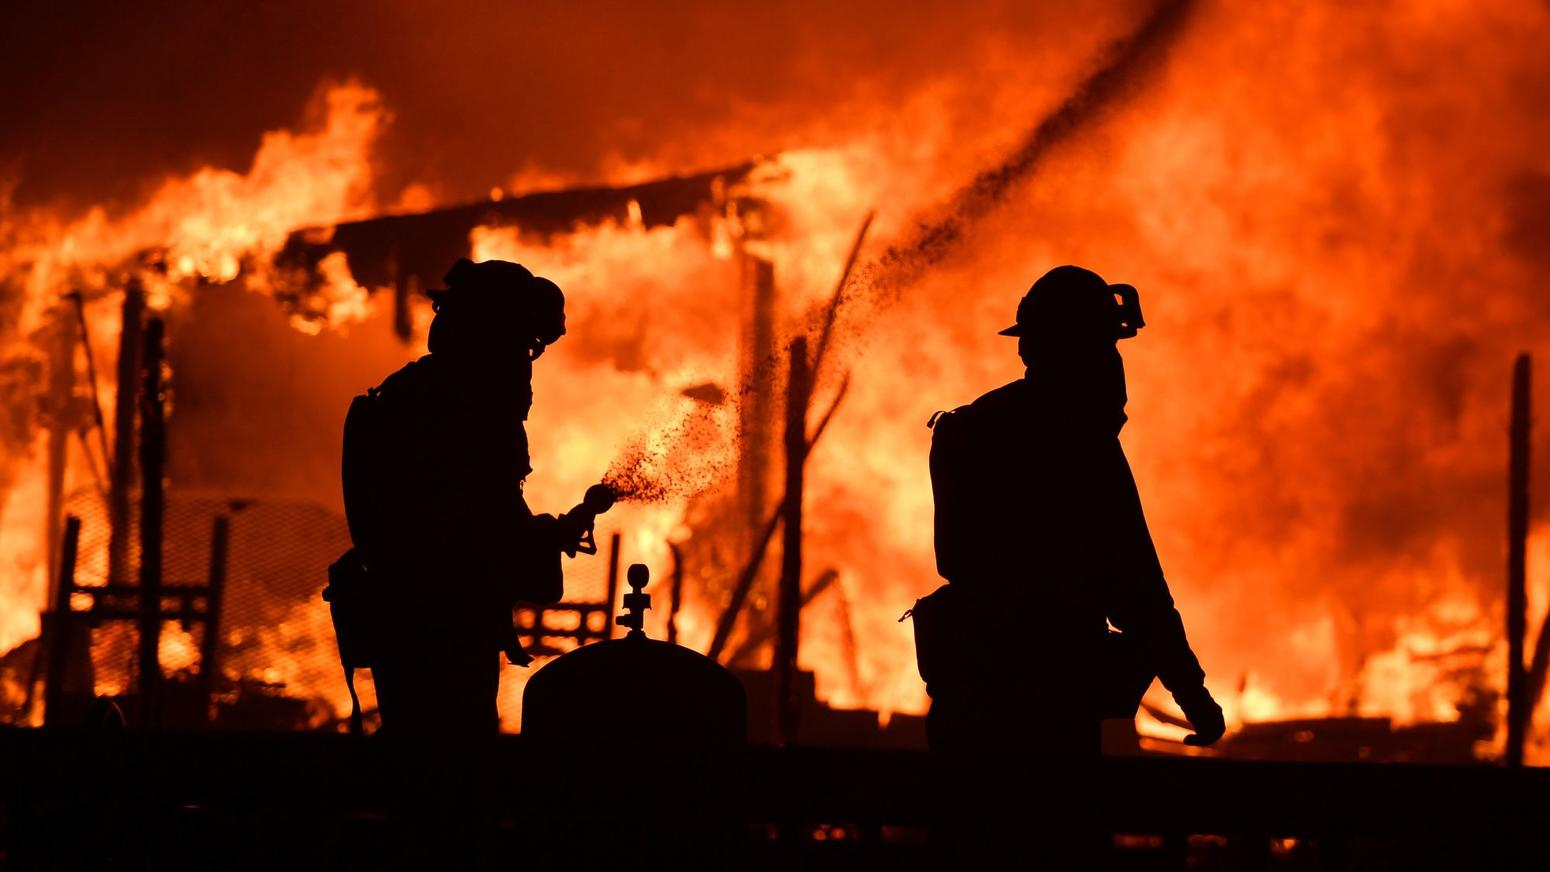 Firefighters douse flames as a home burns in the Napa wine region, as multiple wind-driven fires continue to whip through the region. (Josh Edelson / AFP/Getty Images)